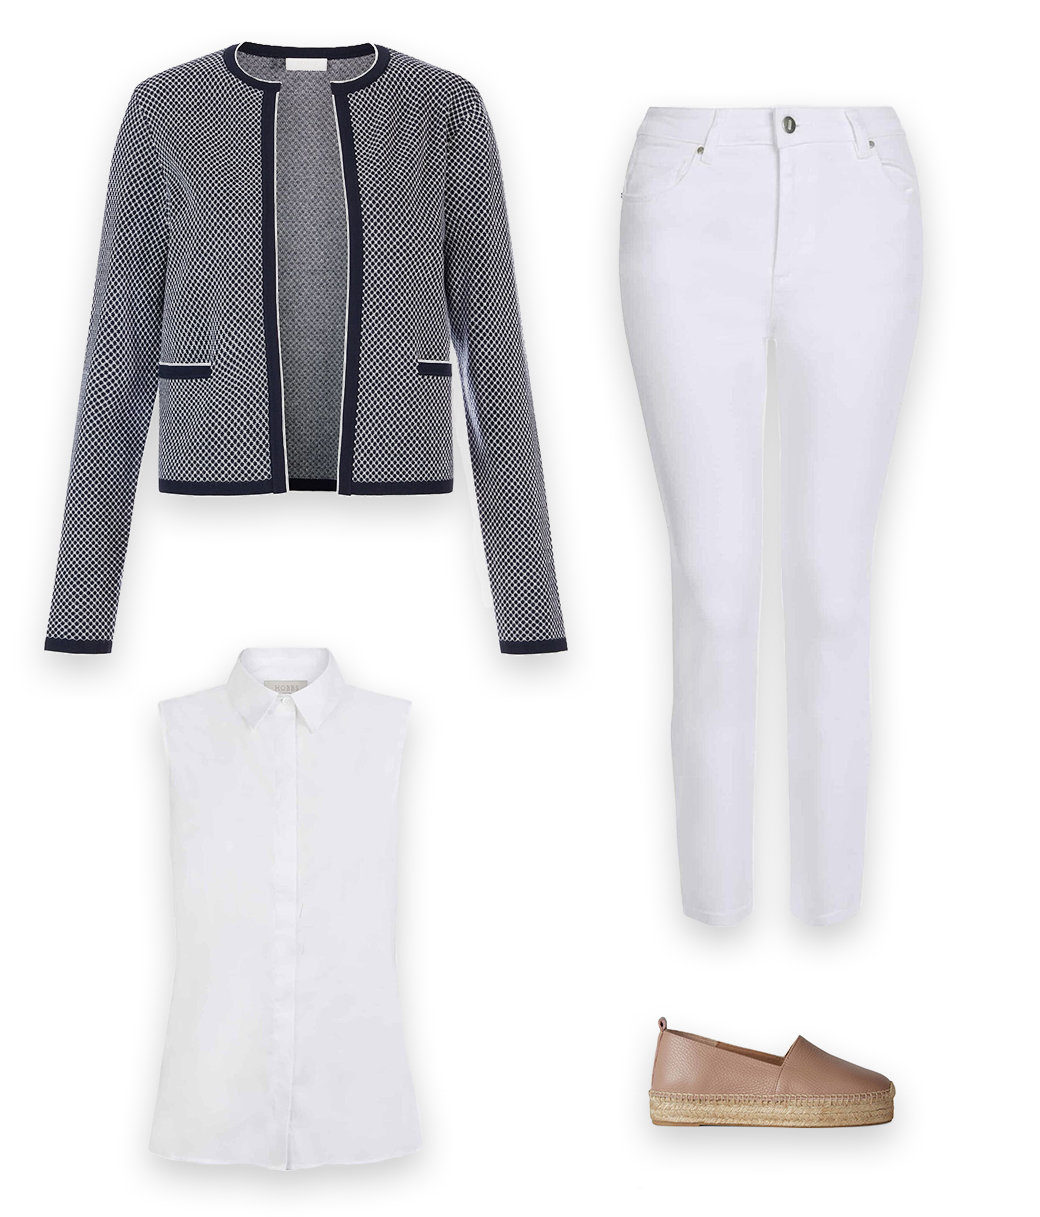 A chic cardigan outfit with a navy blue cardigan, sleeveless white shirt, white jeans and flat espadrilles